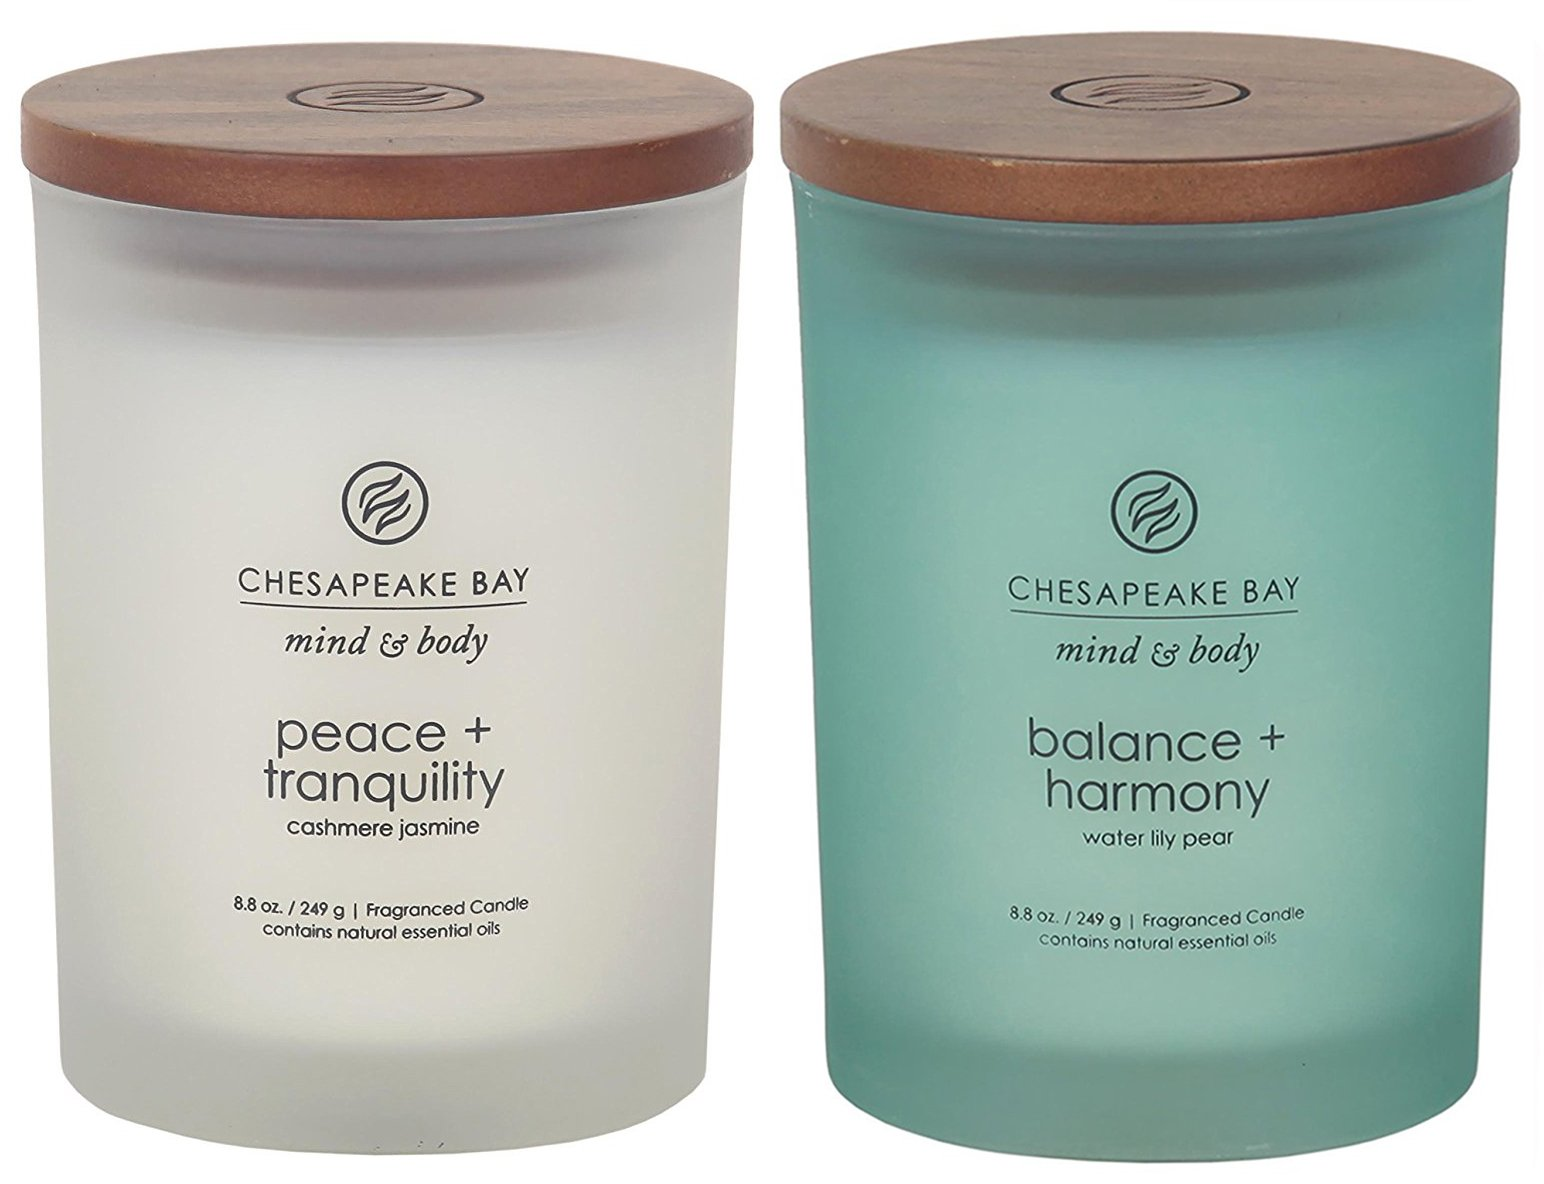 Chesapeake Bay Candle Mind & Body Scented Candles, Peace + Tranquility Balance + Harmony, Medium, 2 Count by Chesapeake Bay Candle